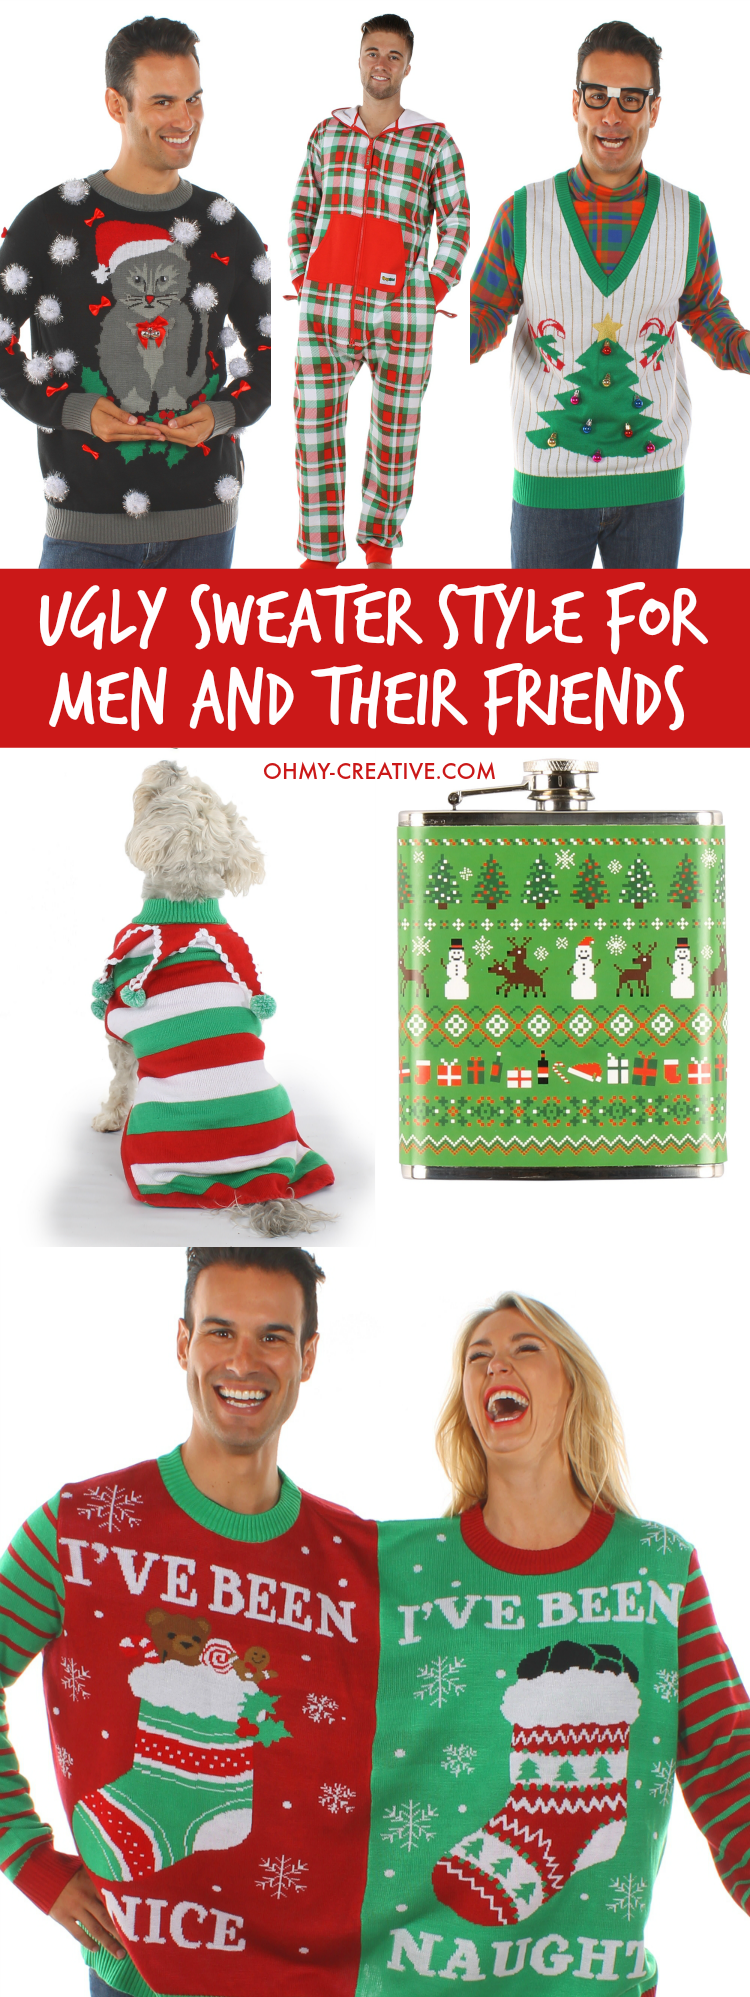 Ugly Christmas Sweater Style For Men And Their Friends! Be hot, hip and hilarious with these Ugly Christmas Sweater Party Looks from head to toe! Fun accessories too! | OHMY-CREATIVE.COM